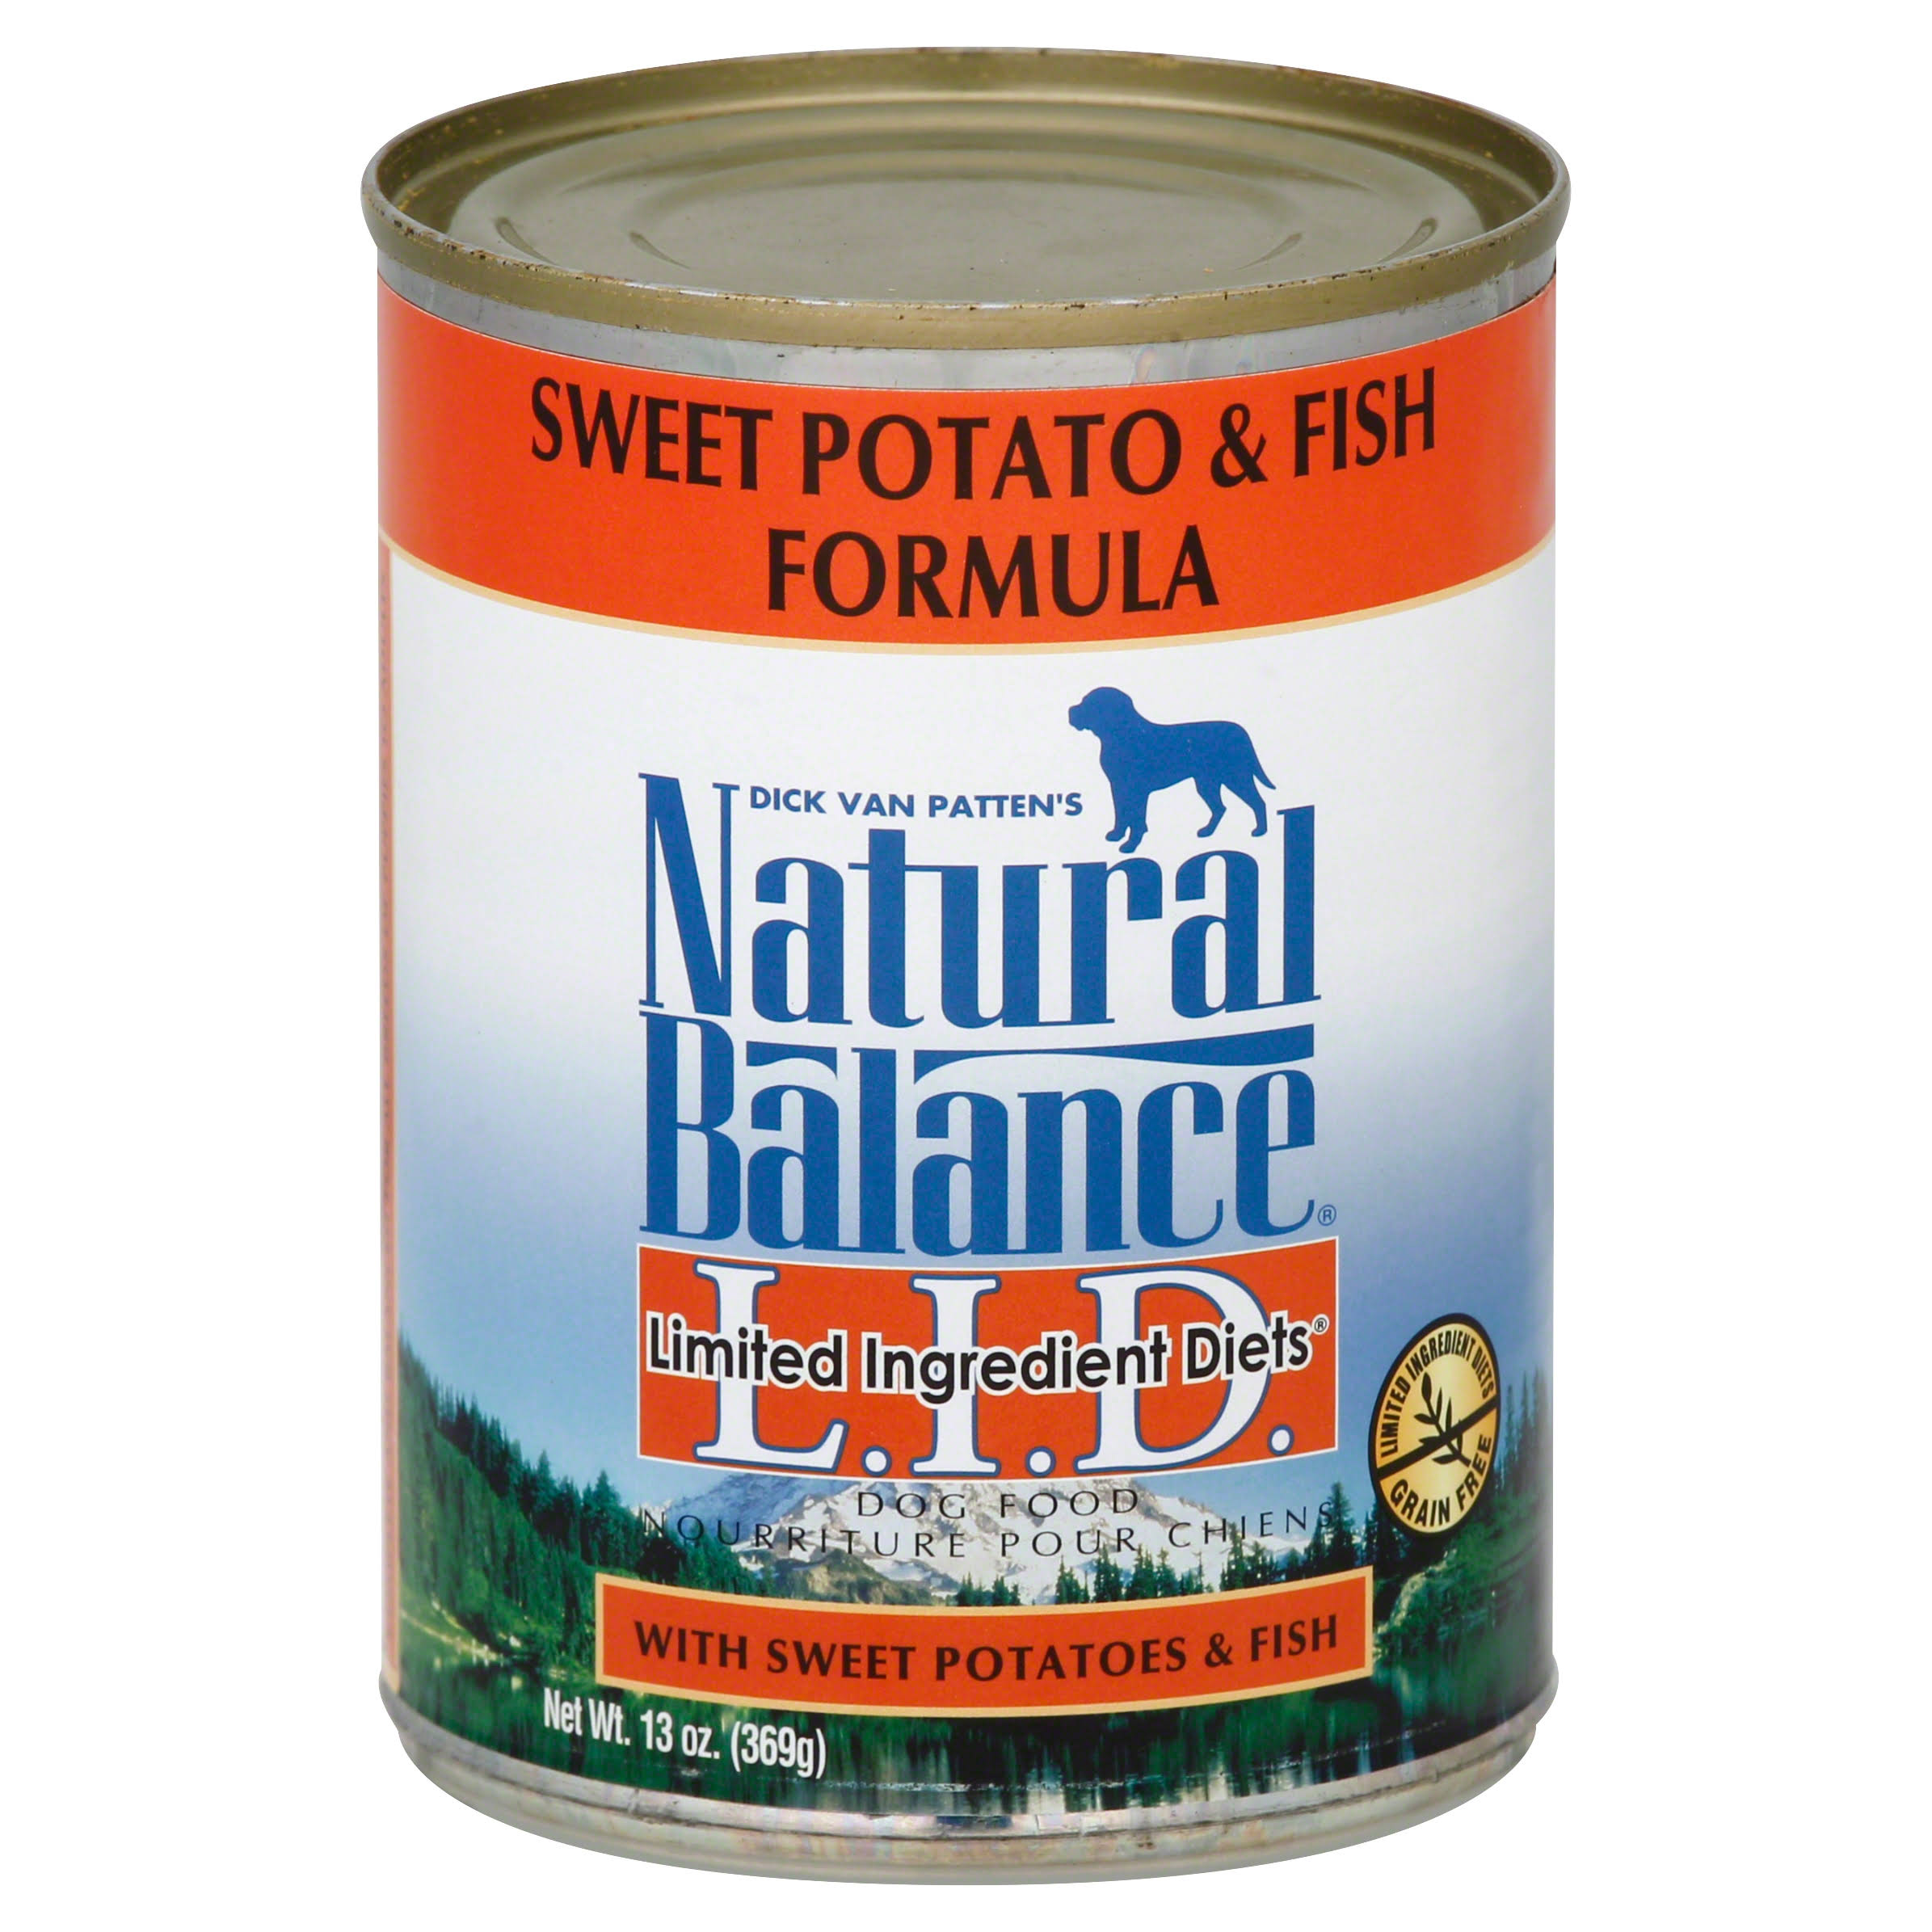 Natural Balance Limited Ingredient Diets Dog Food - Sweet Potato and Fish